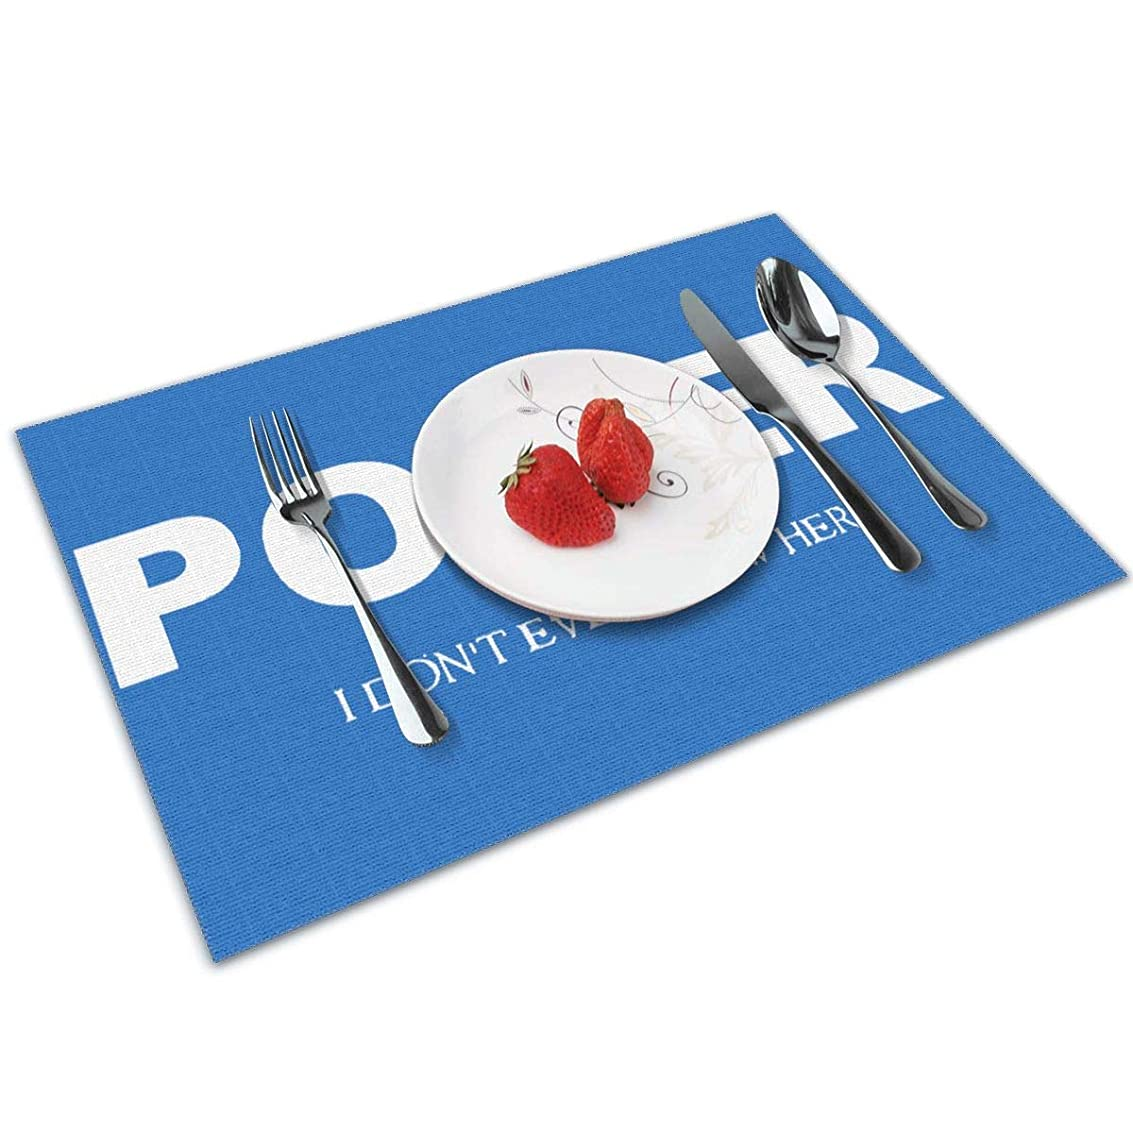 Candy Ran Poker I Don't Ever Know Her Indoor/Outdoor Placemats/Place Mats/Table Mats Set of 4, Kitchen Tablemats for Dining Table, Non-Slip Washable Heat Resistant ssdzv1140422525